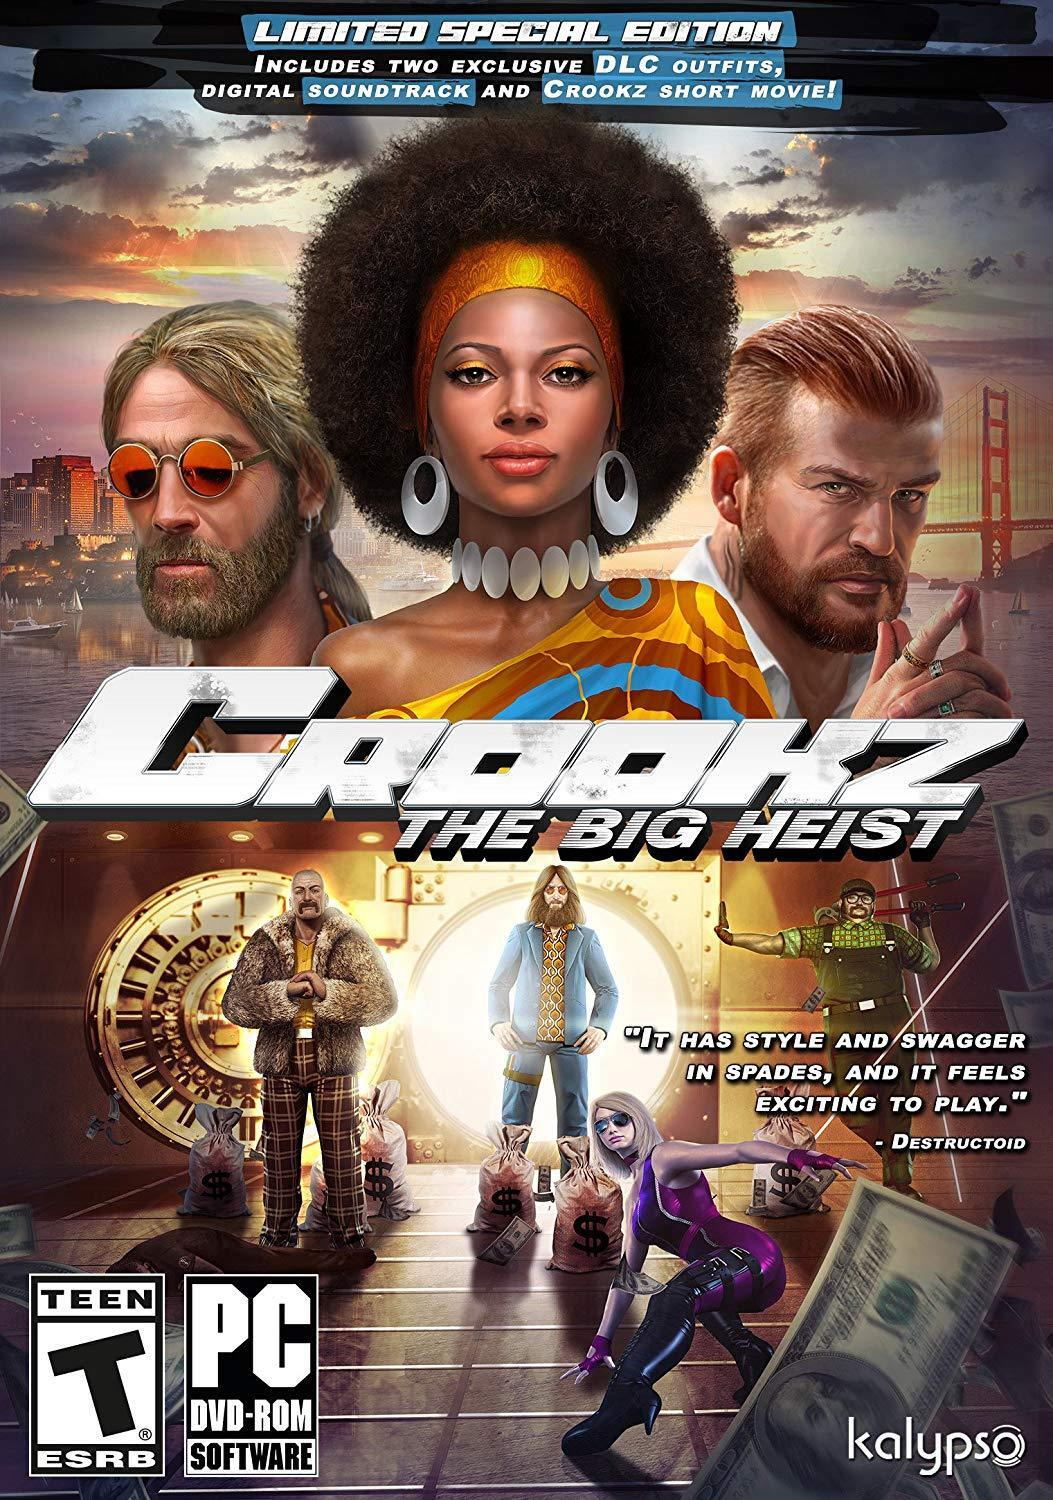 Computer Games - Crookz The Big Heist Limited Special Edition PC Games Windows 10 8 7 XP Computer